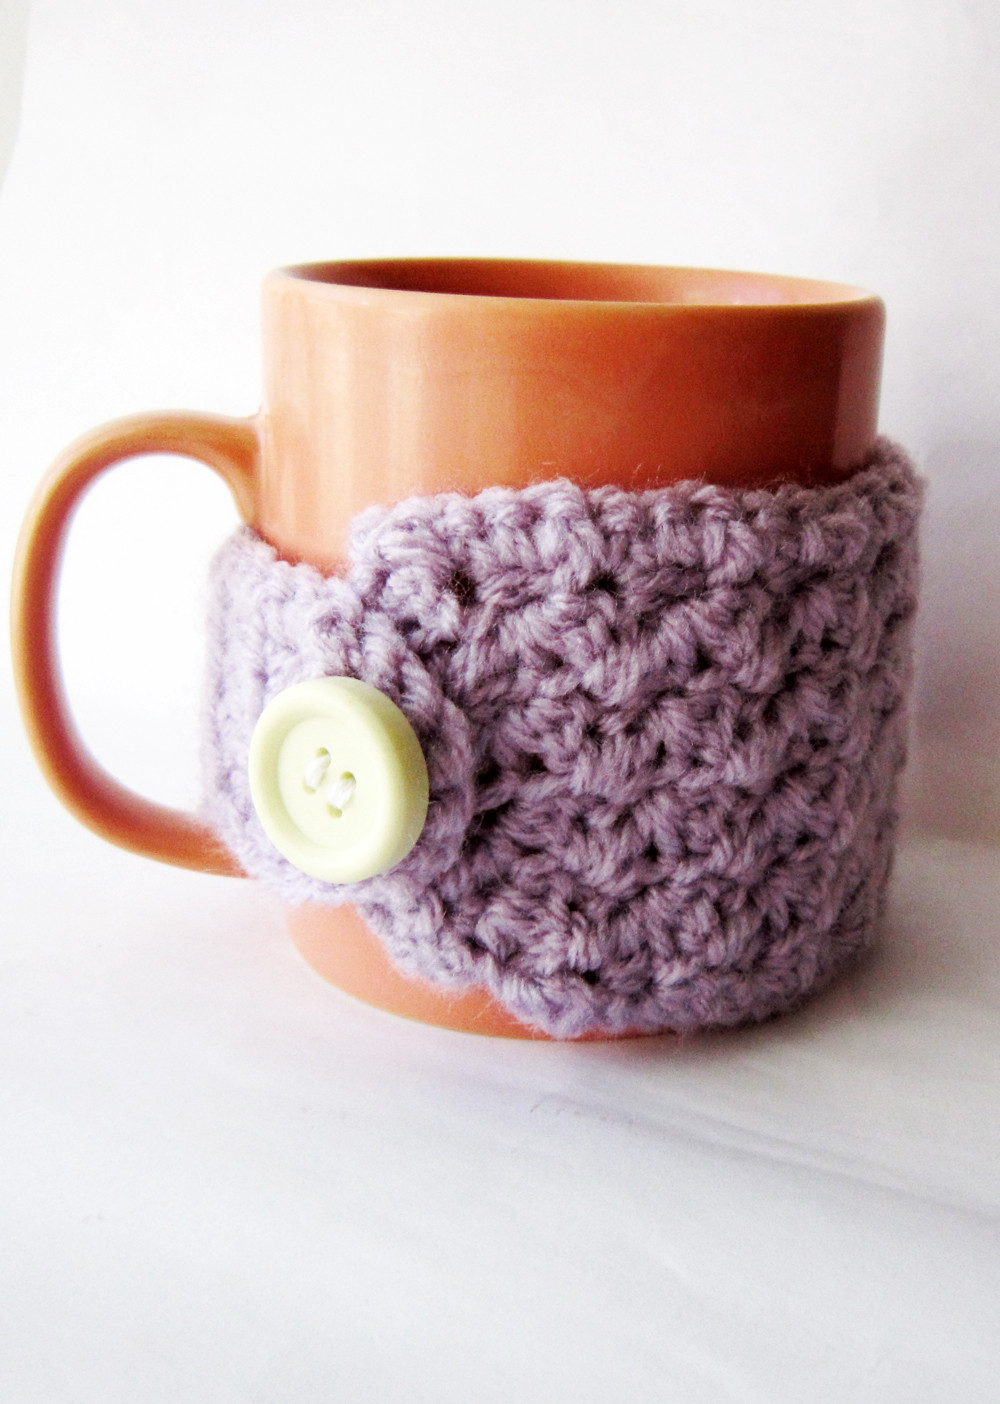 Crochet Coffee Cup Cozy Inspirational Easy Crochet Mug Cozy Free Pattern Akamatra Of Crochet Coffee Cup Cozy Luxury Happy Holidays Handmade Gift Idea Crochet Heart Coffee